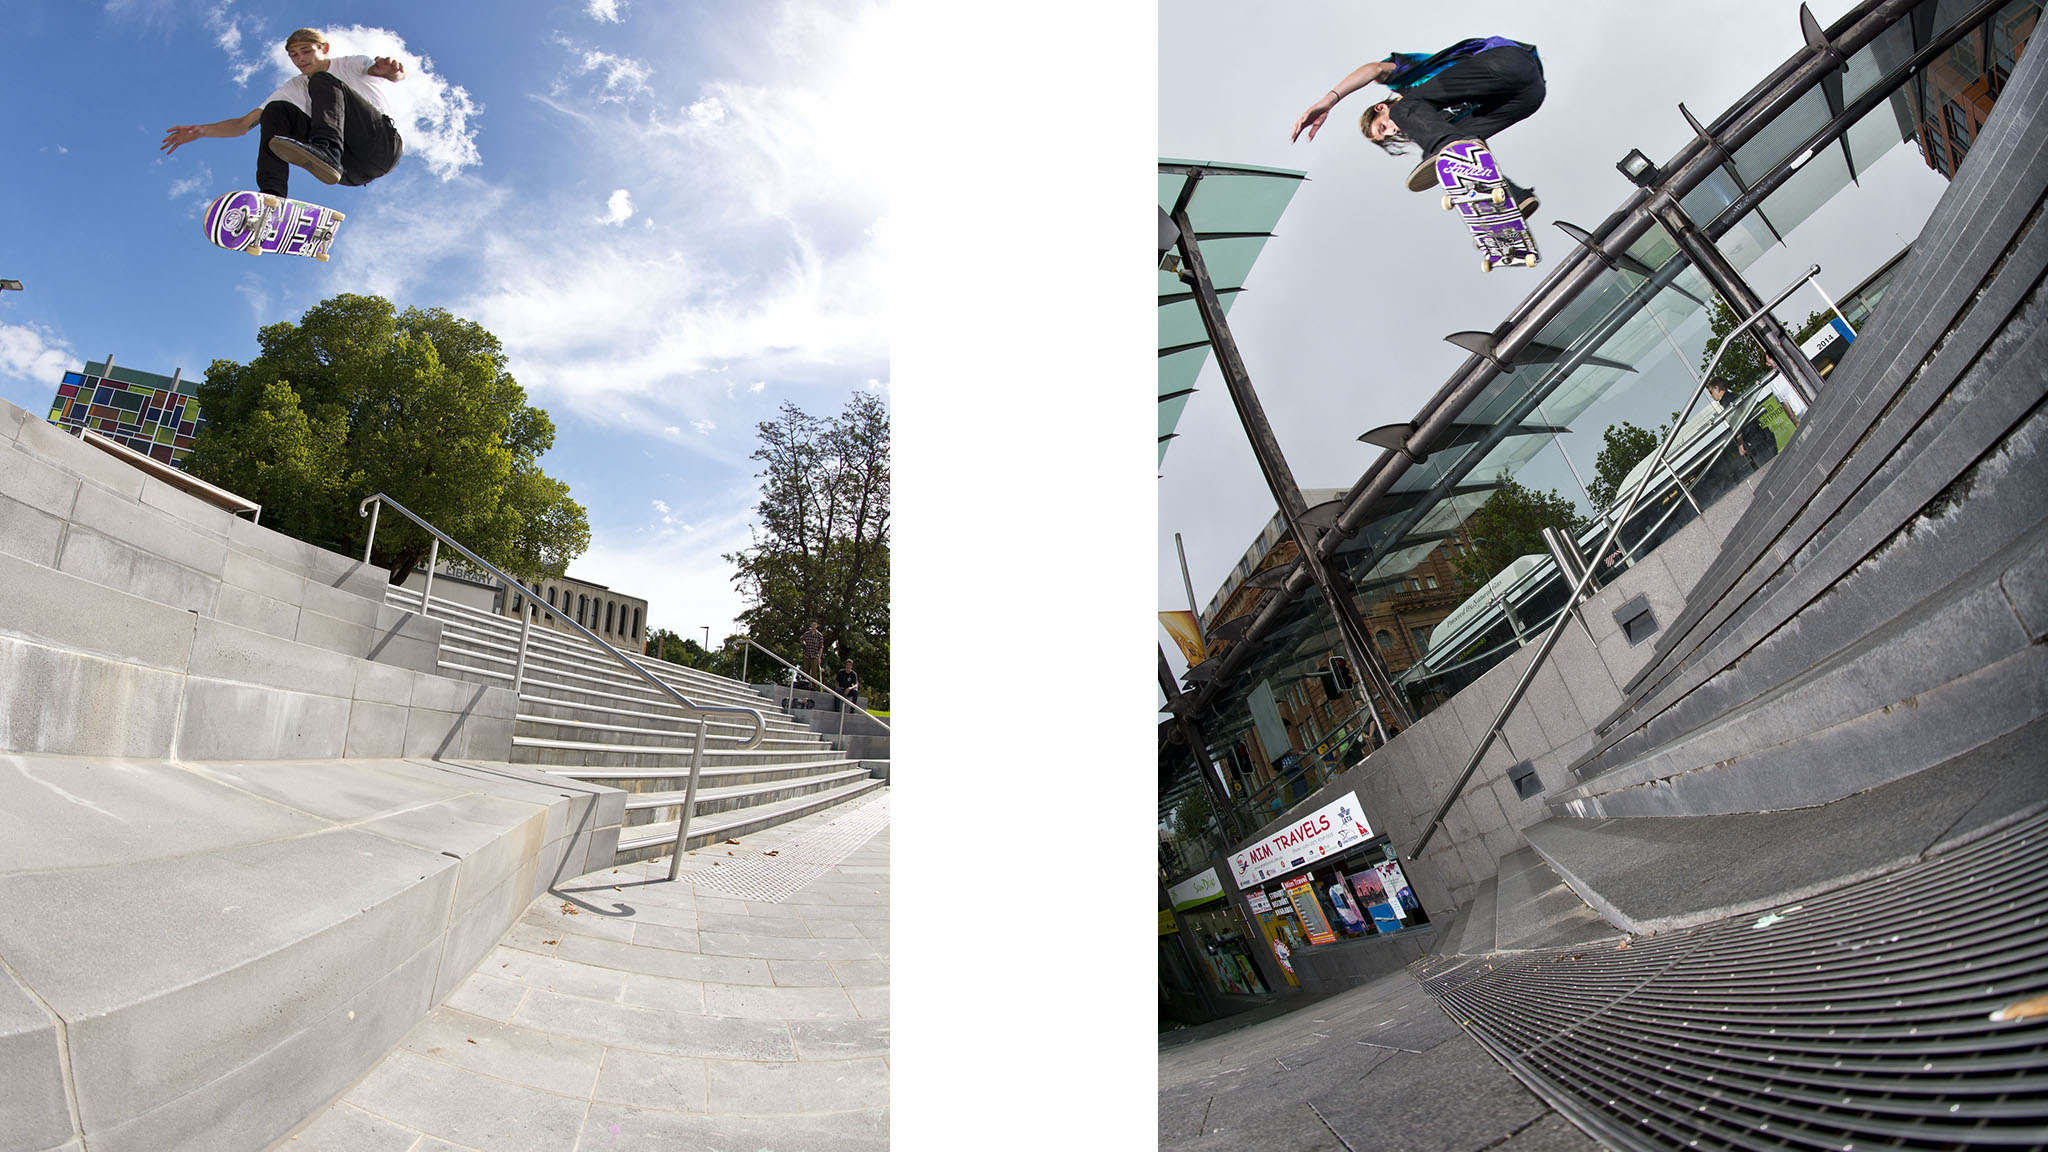 Varial heelflip (left) and frontside heelflip (right).